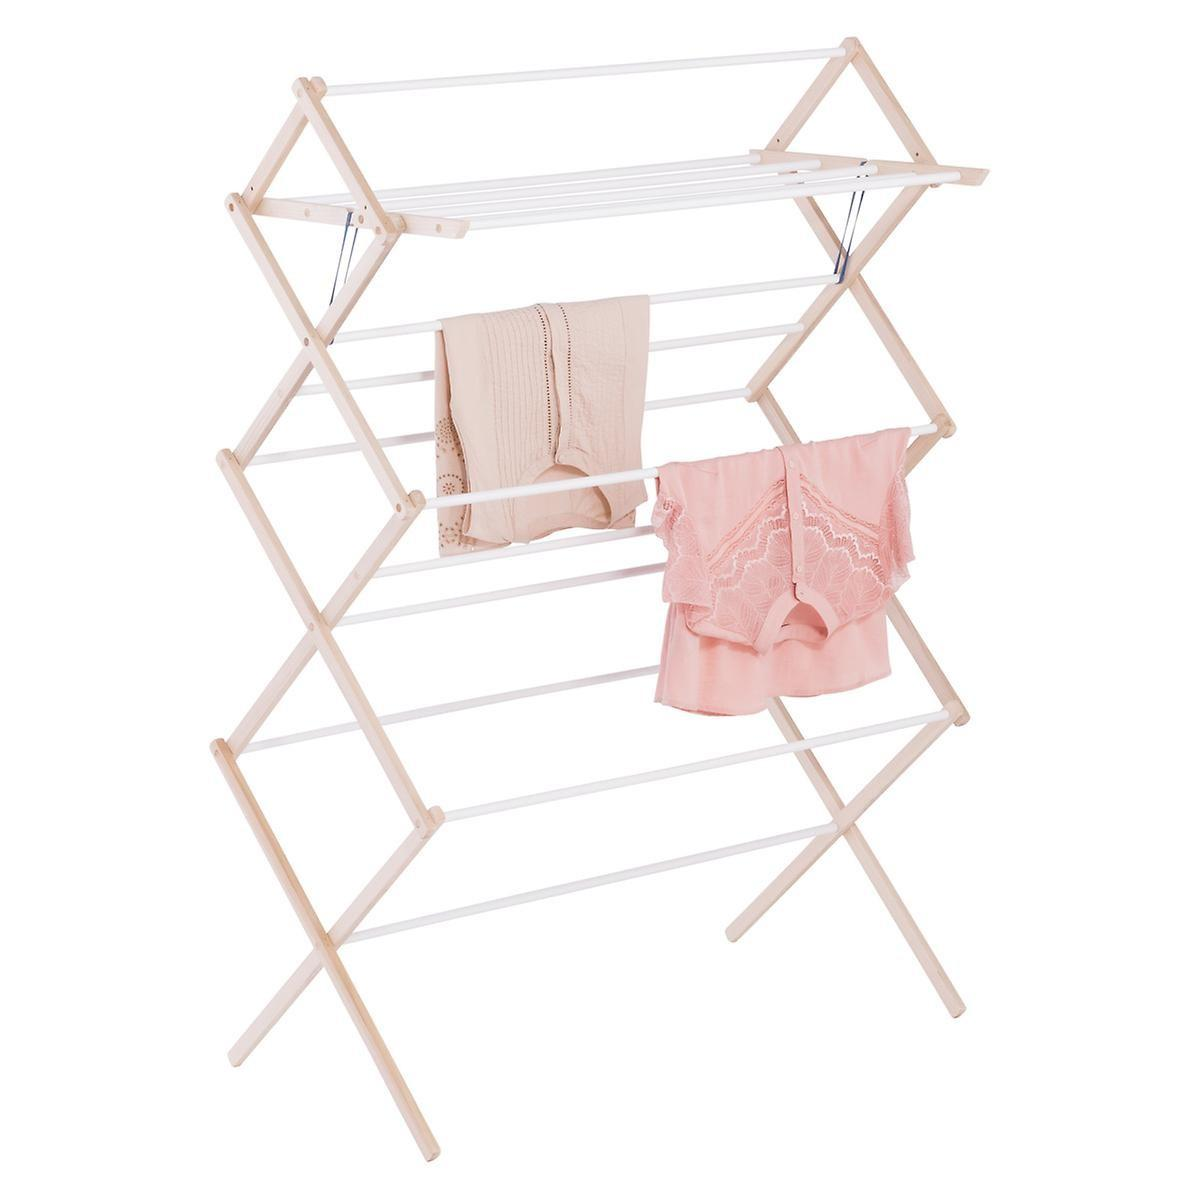 Rack Mesmerizing Clothes Drying Ideas